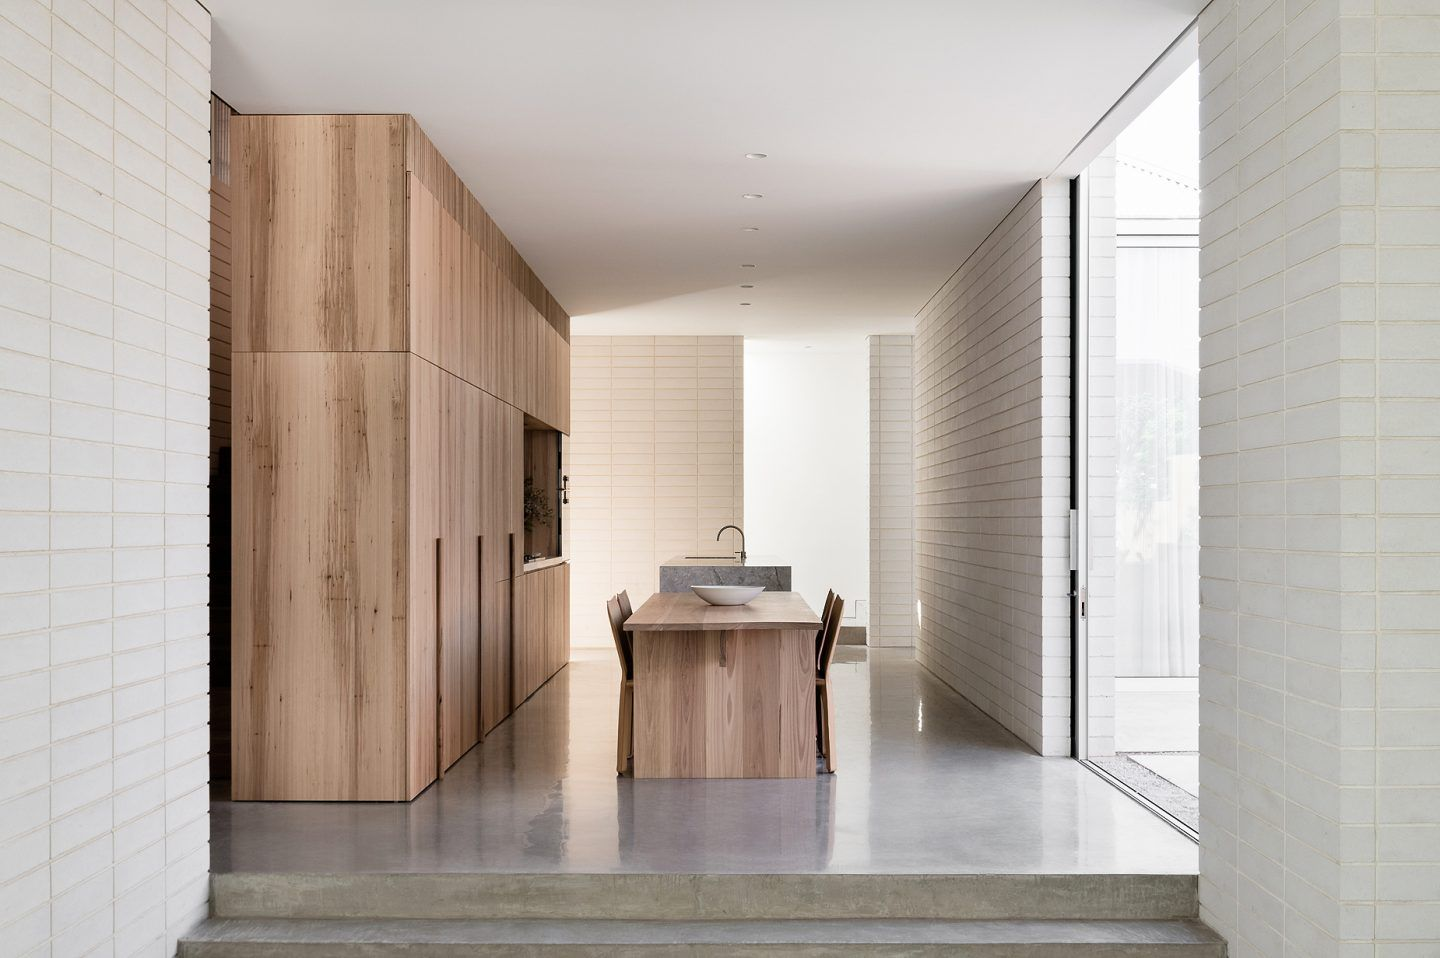 IGNANT-Architecture-Ritz-Ghougassian-Edsall-Street-05